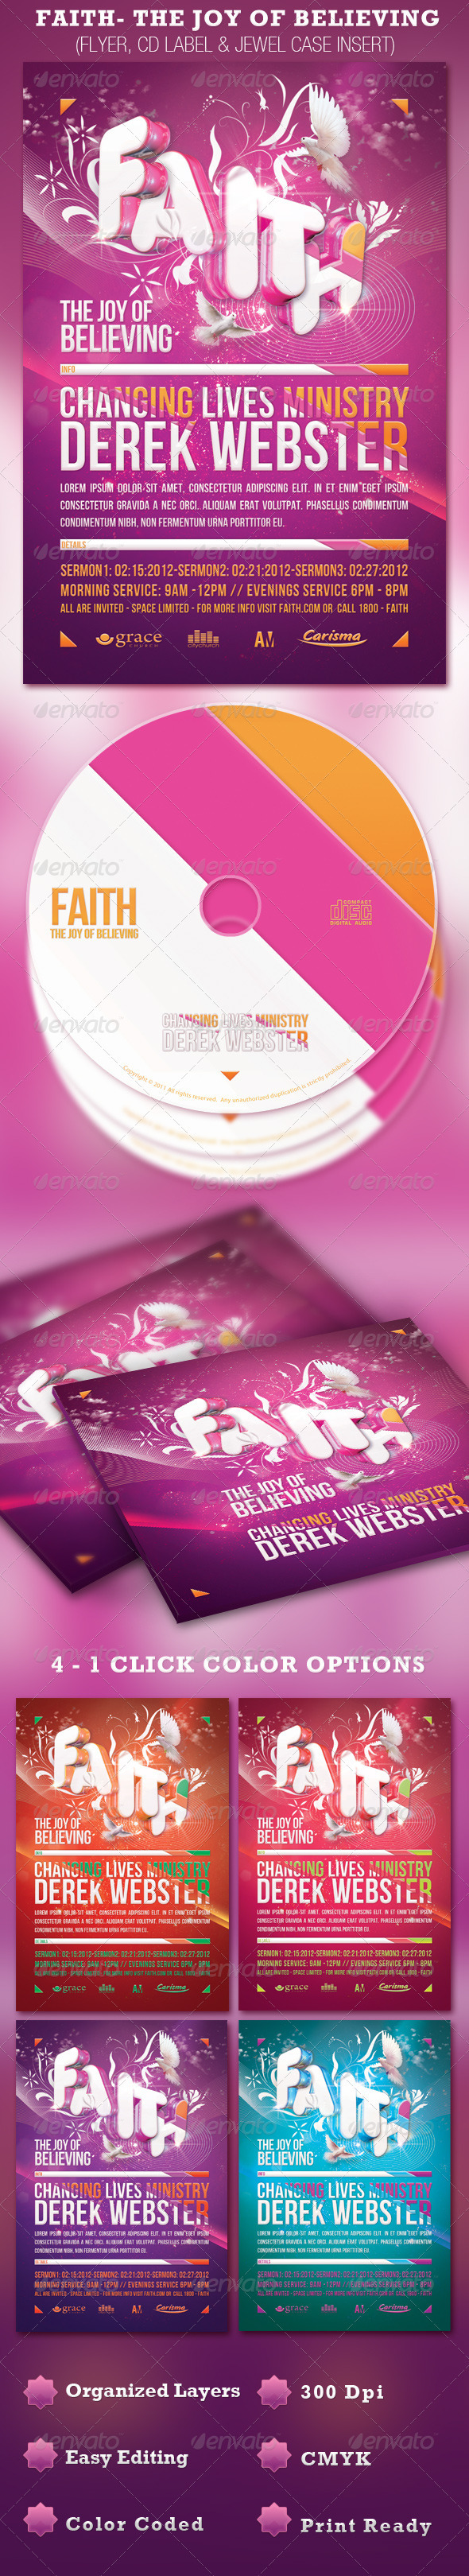 Faith Church Flyer and CD Template - Church Flyers